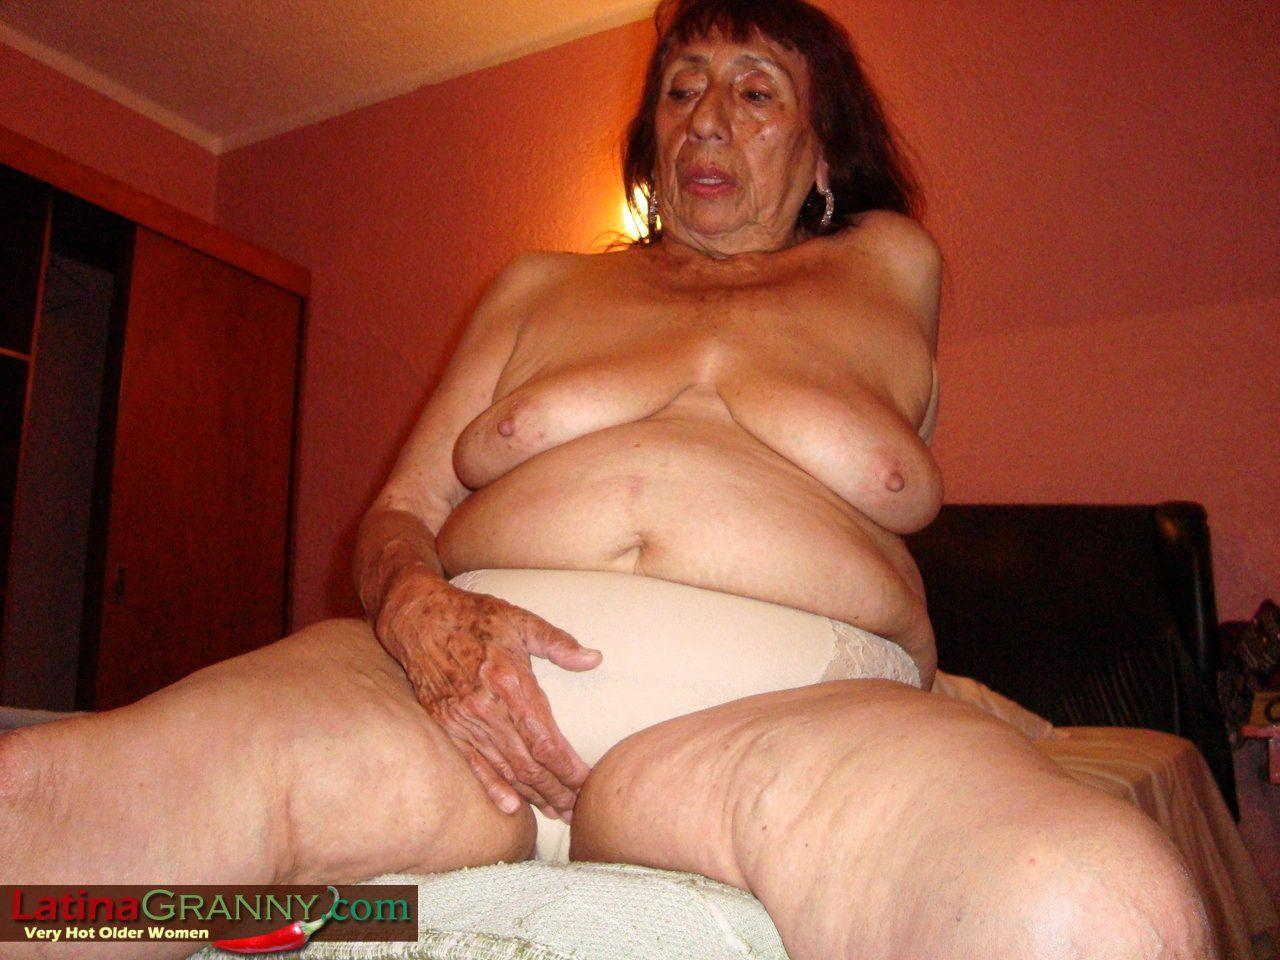 Bronx latina mature fucking version